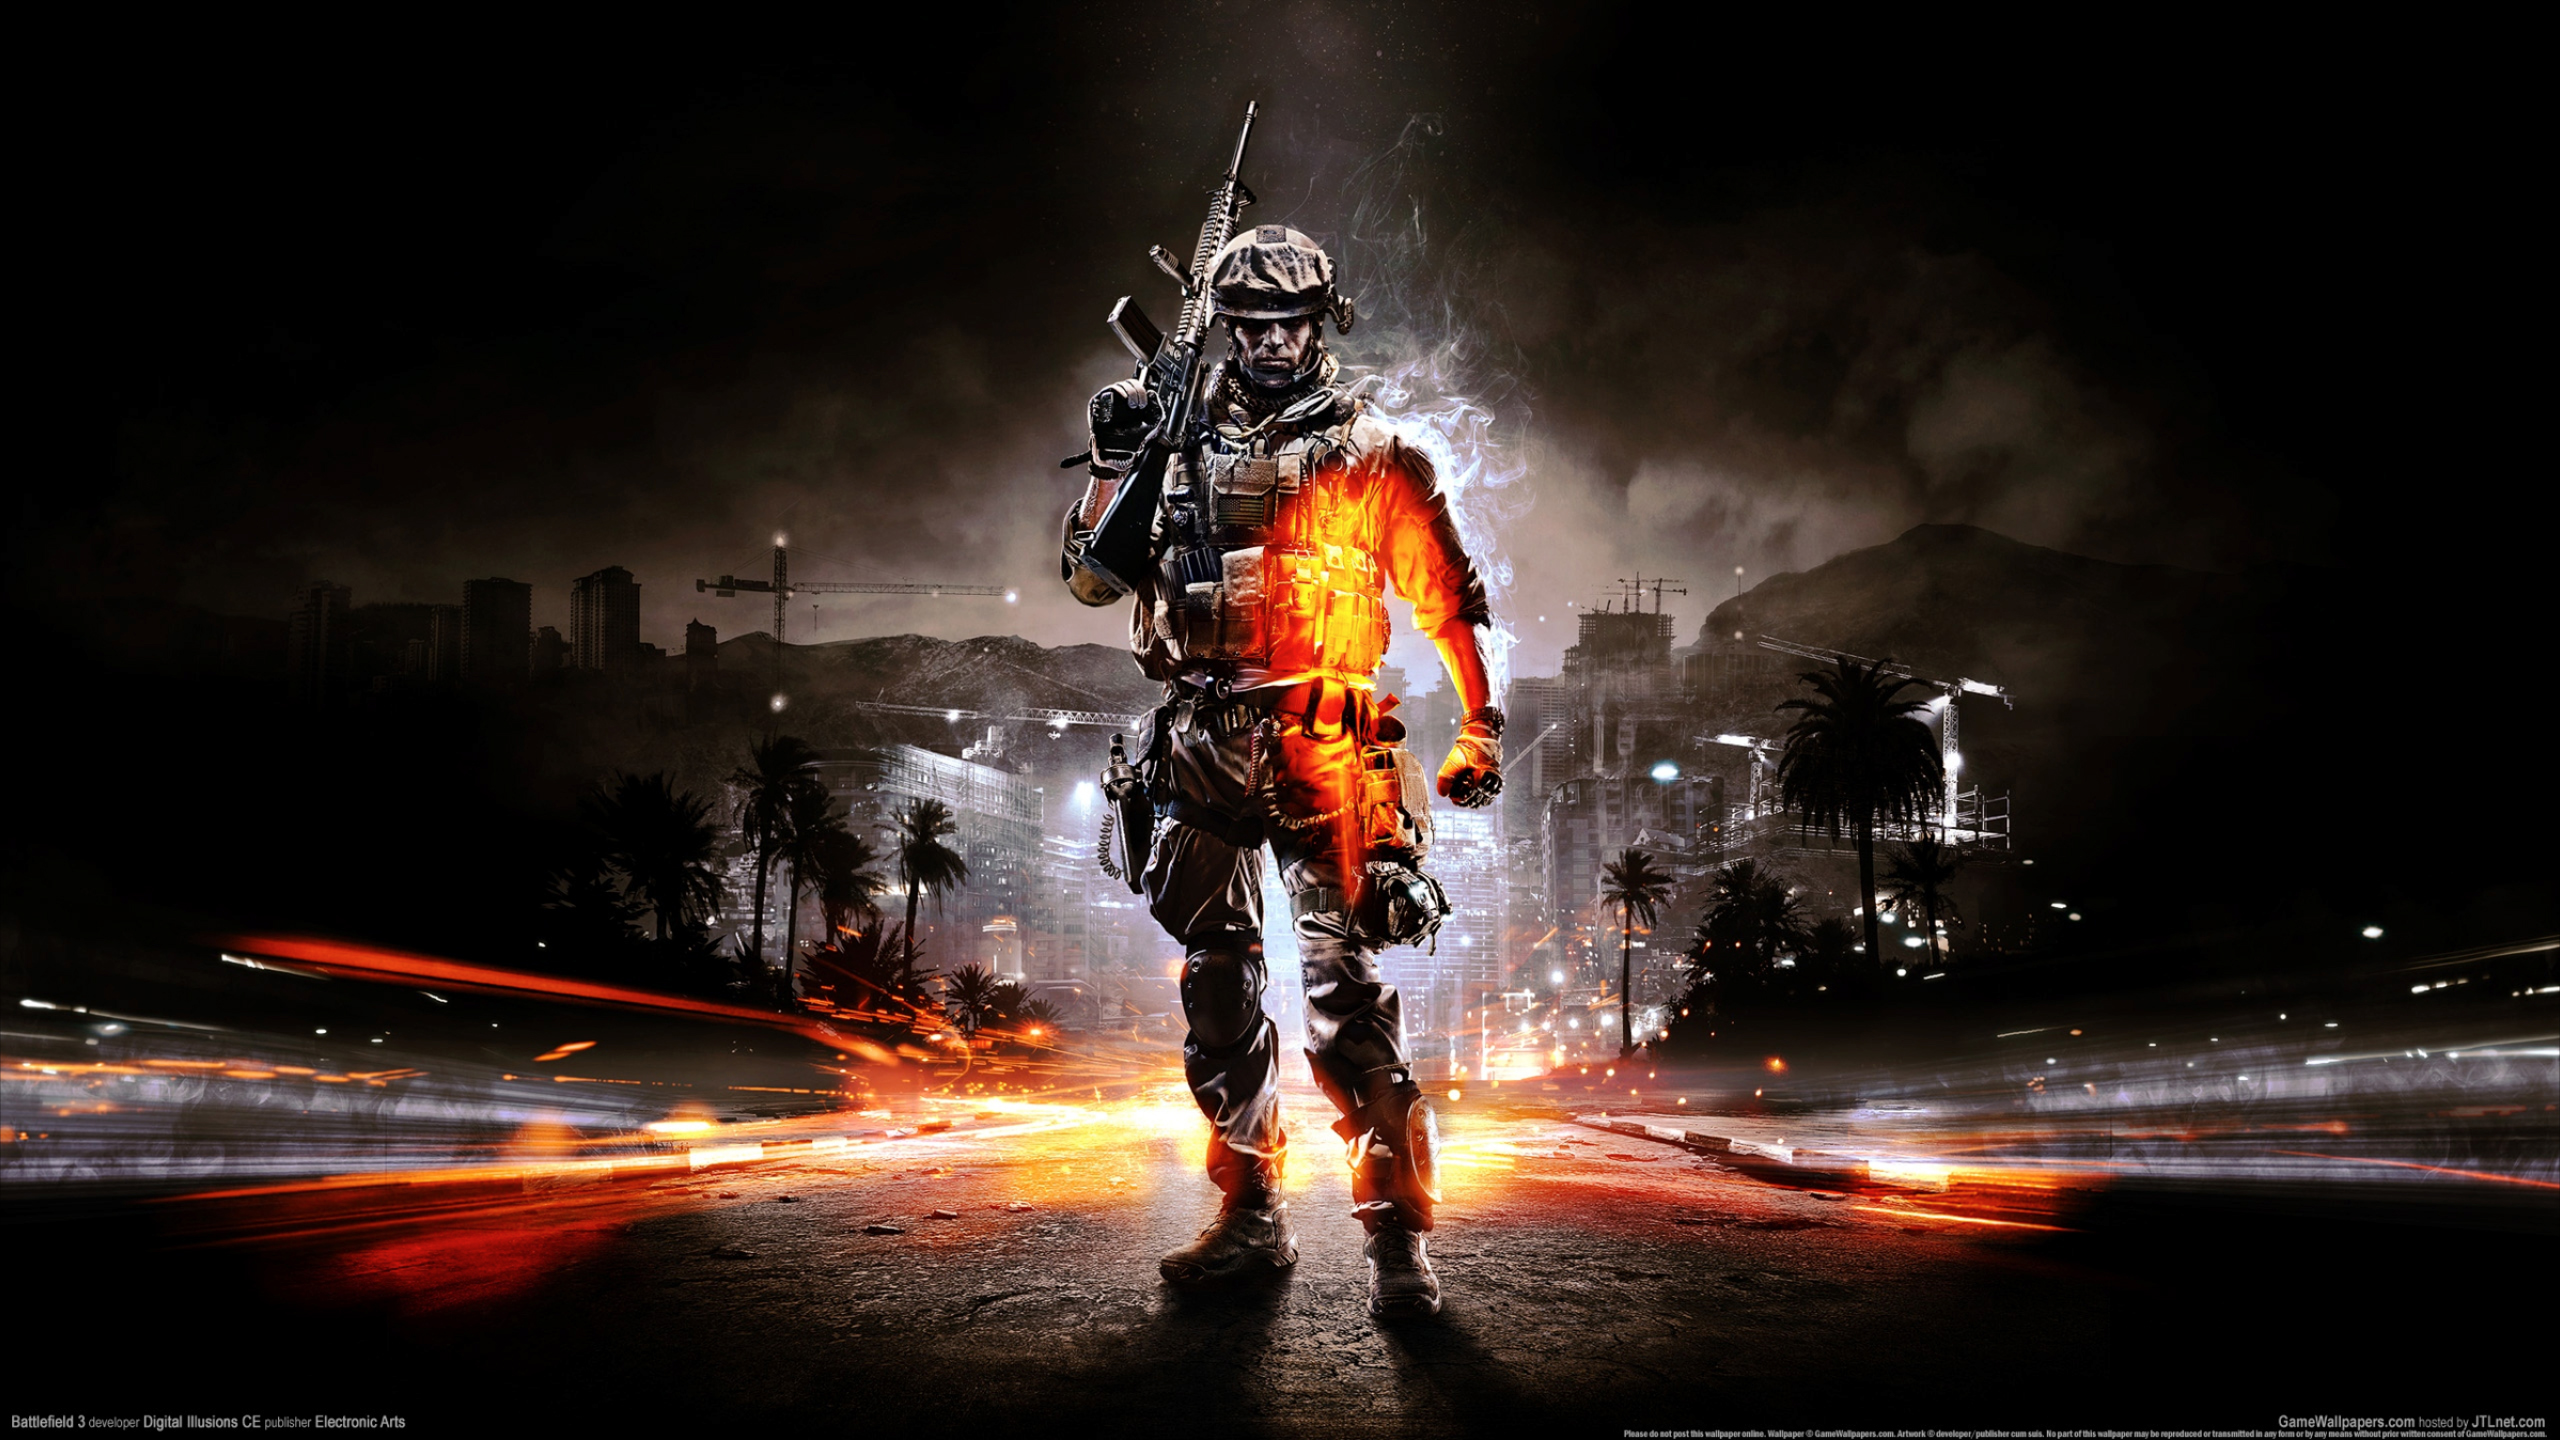 Battlefield 4 Wallpaper 2560x1440 - WallpaperSafari